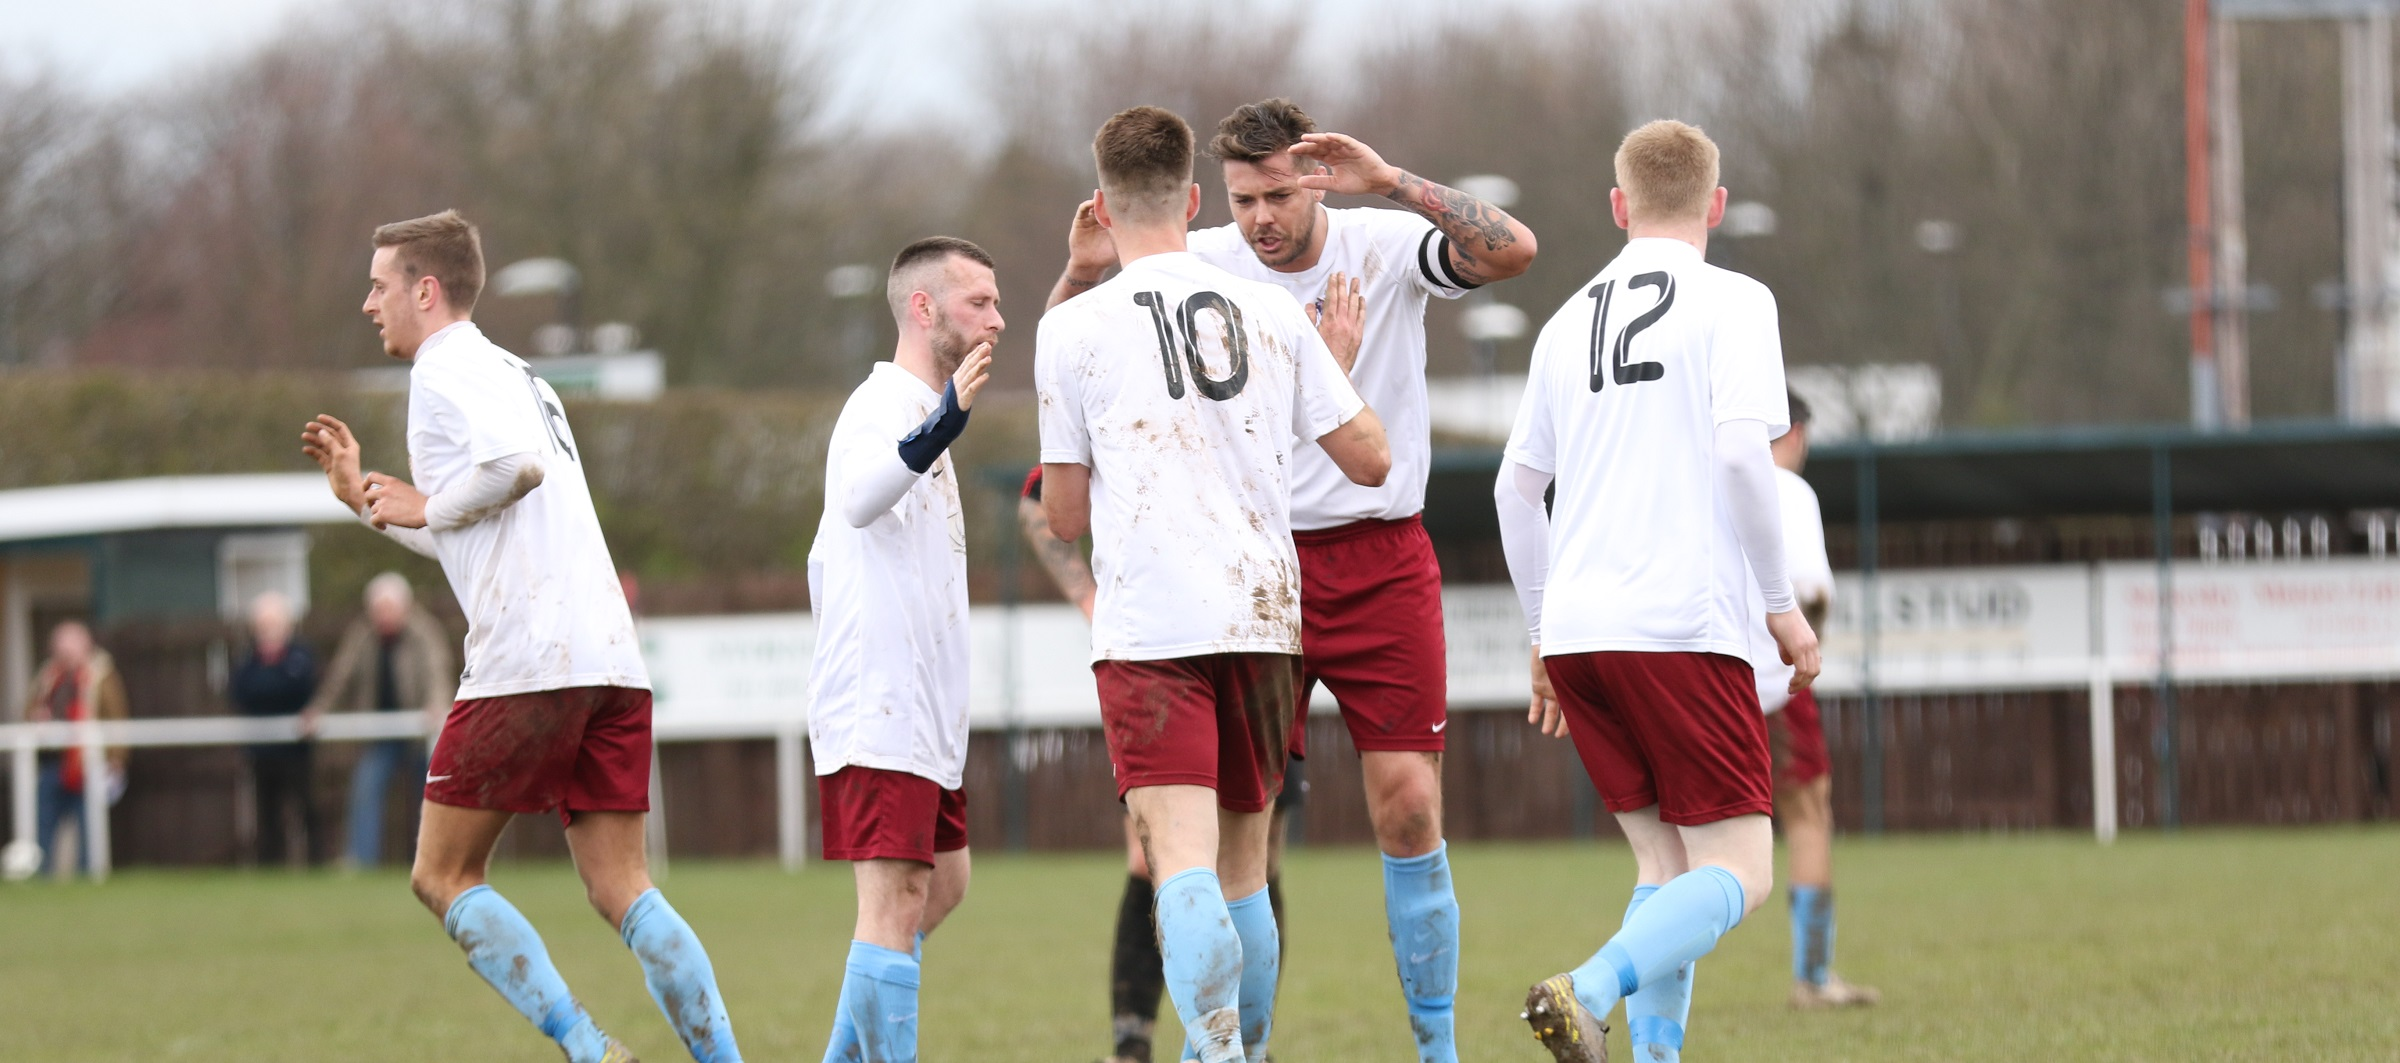 Stokesley Sports Club 0-3 South Shields